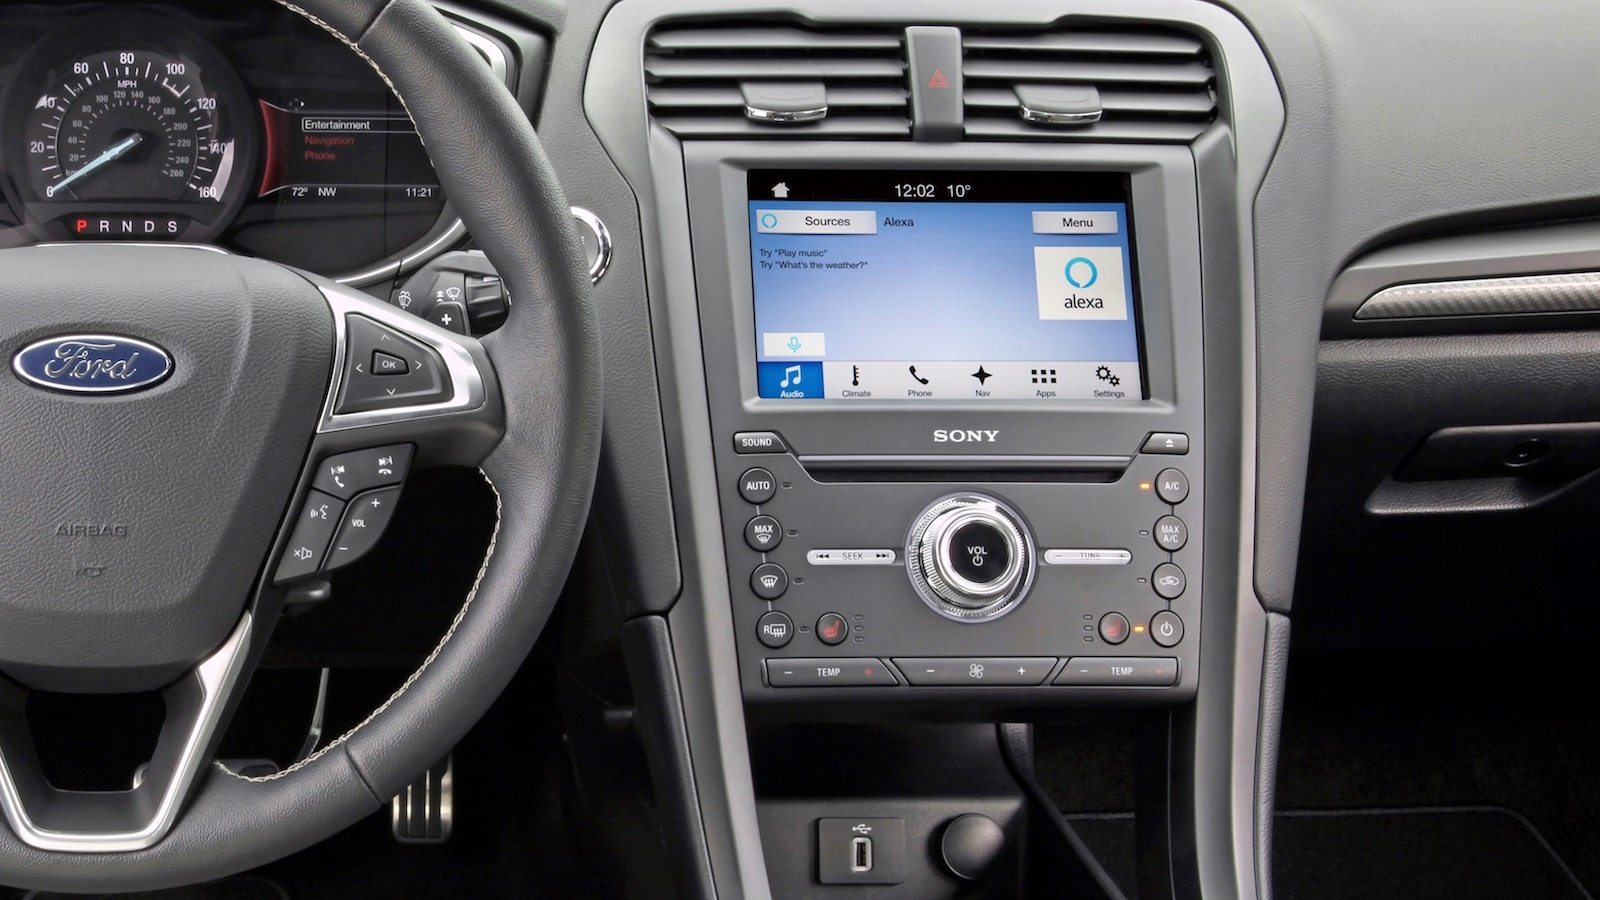 Ford and Amazon team up to offer consumers the ability to access their car from home, and call up other features from their vehicle via Alexa – Amazon's cloud-based voice service